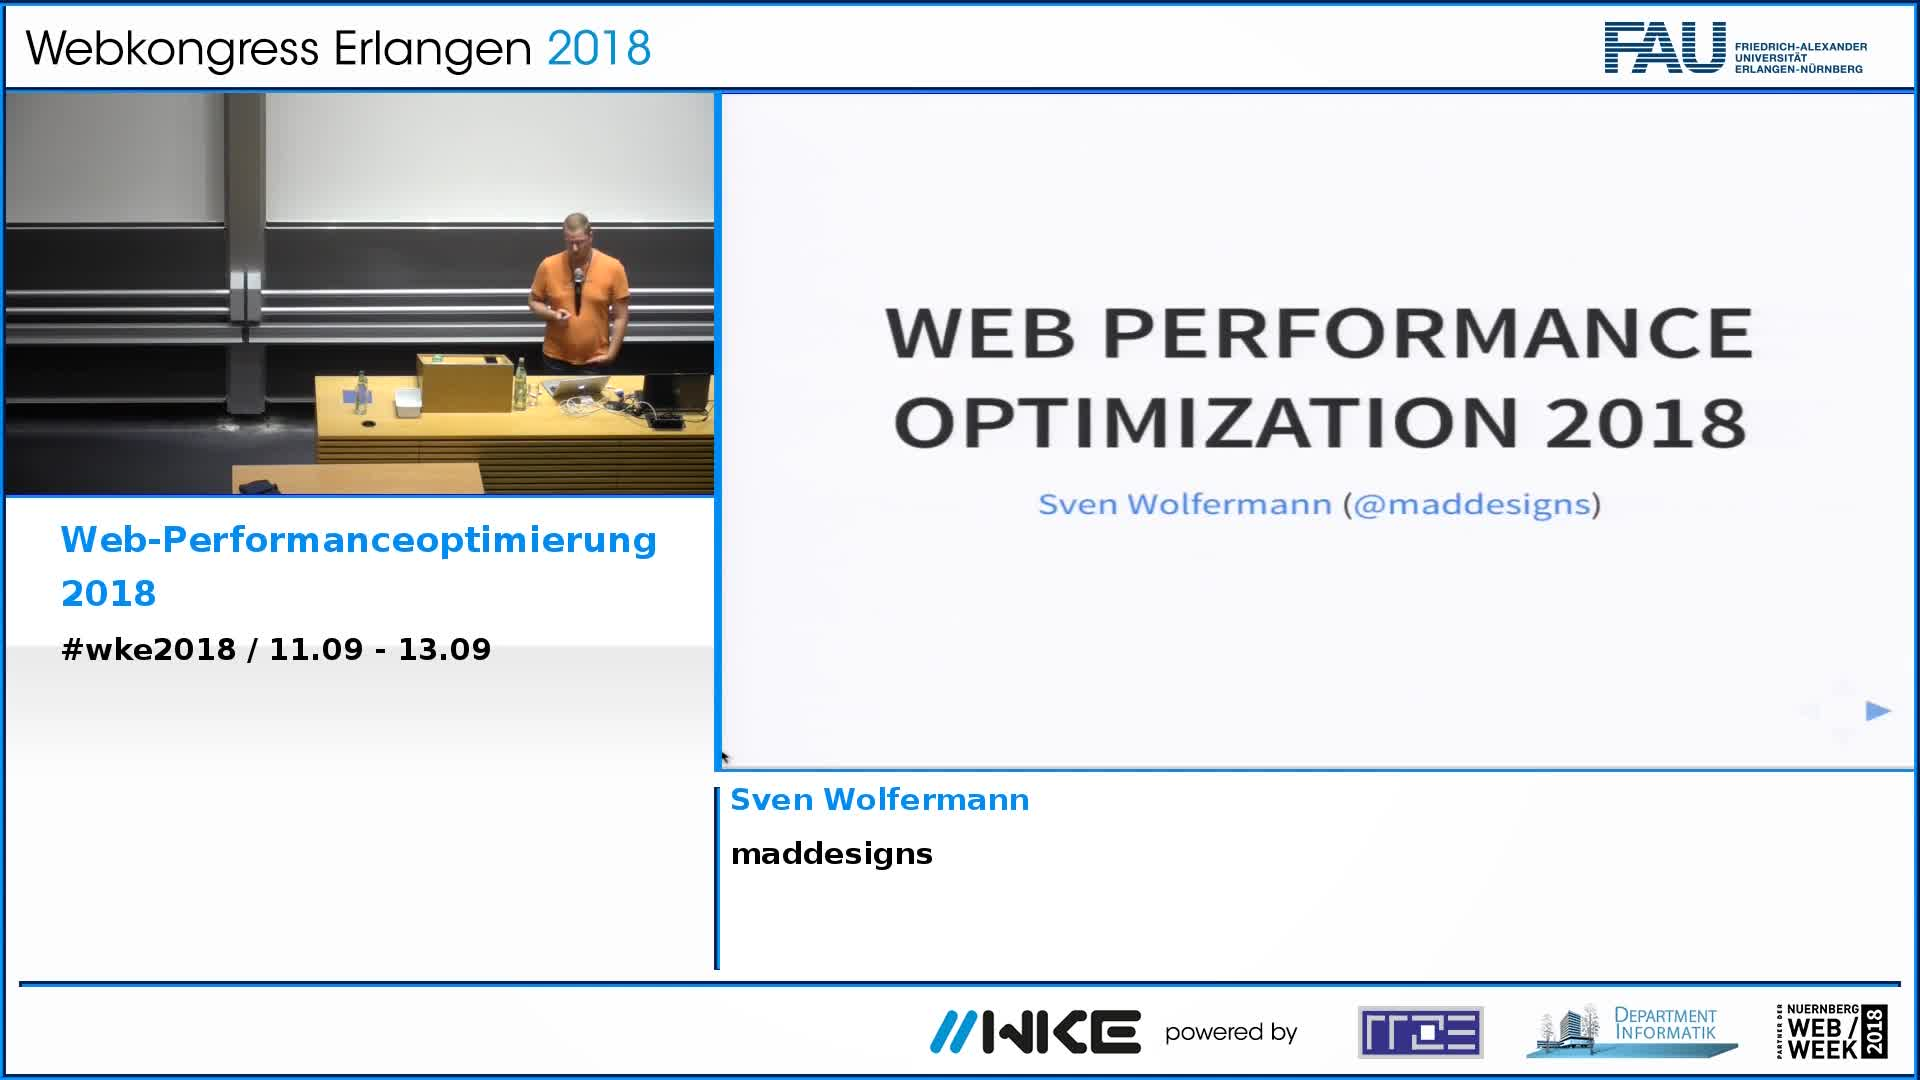 Web-Performanceoptimierung 2018 preview image